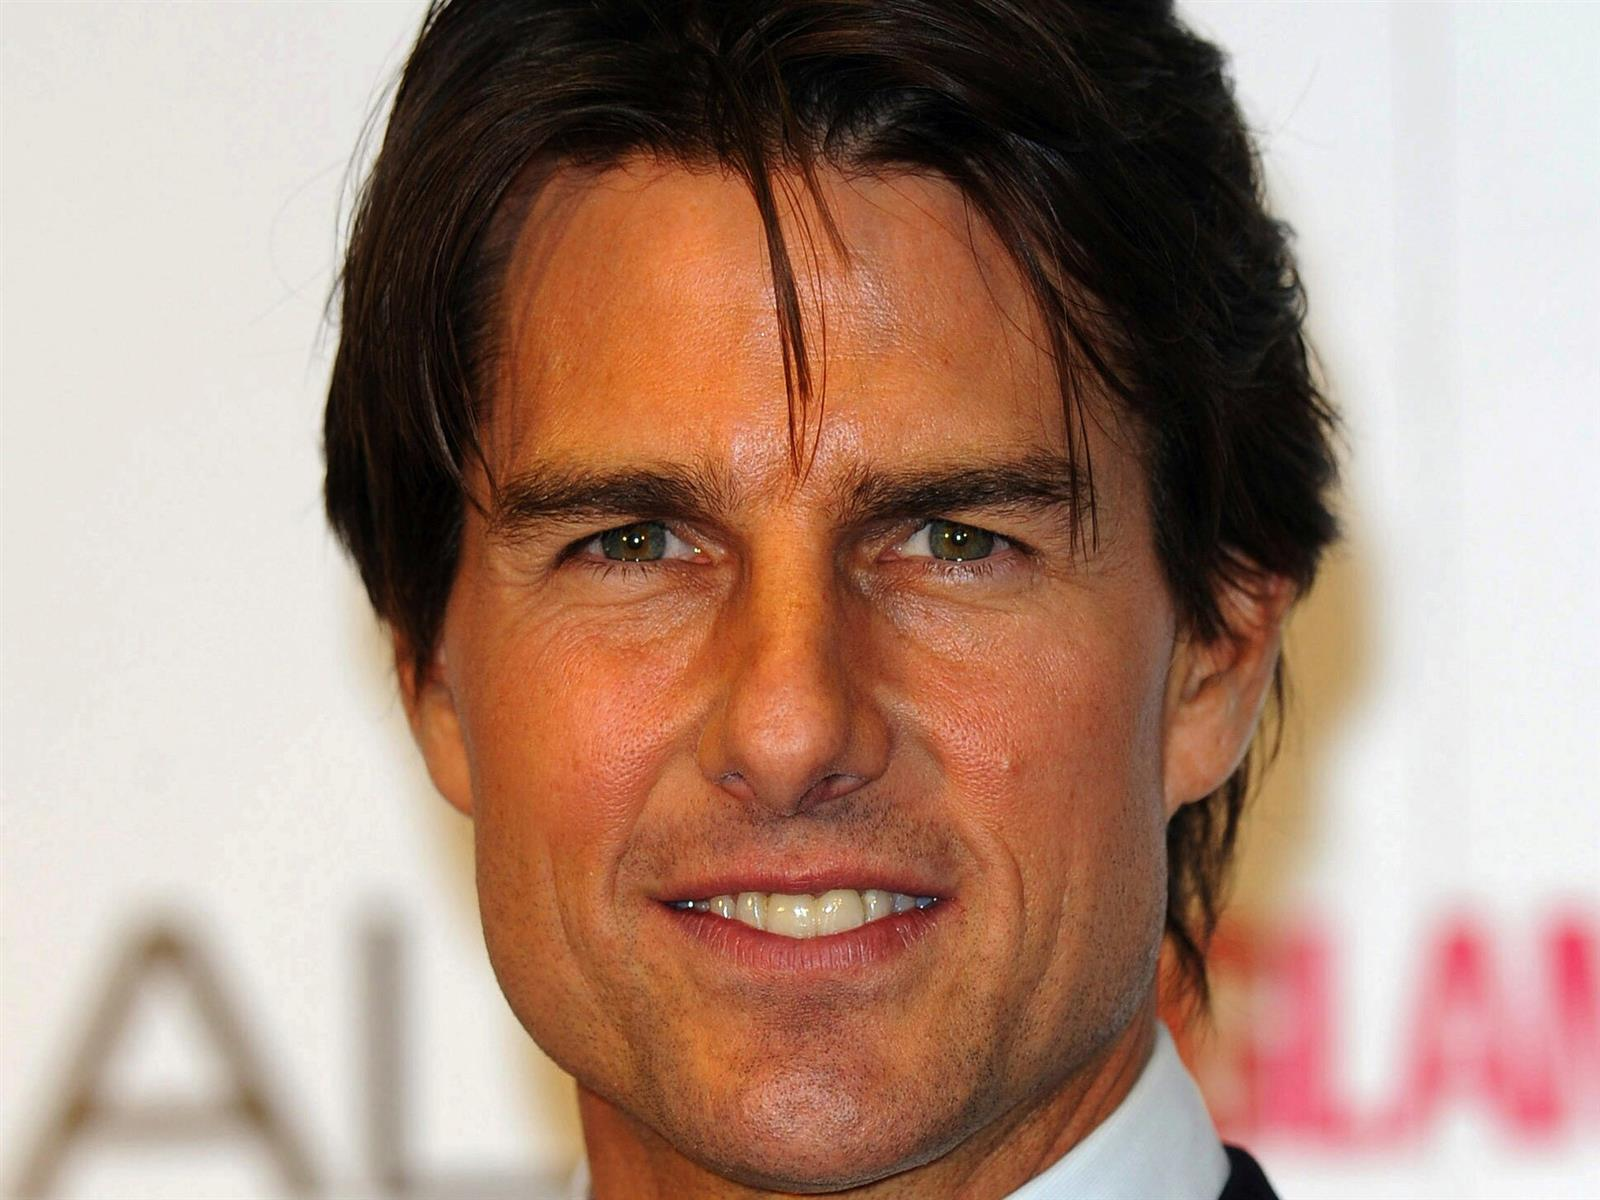 Tom Cruise HD image photo background for mobile